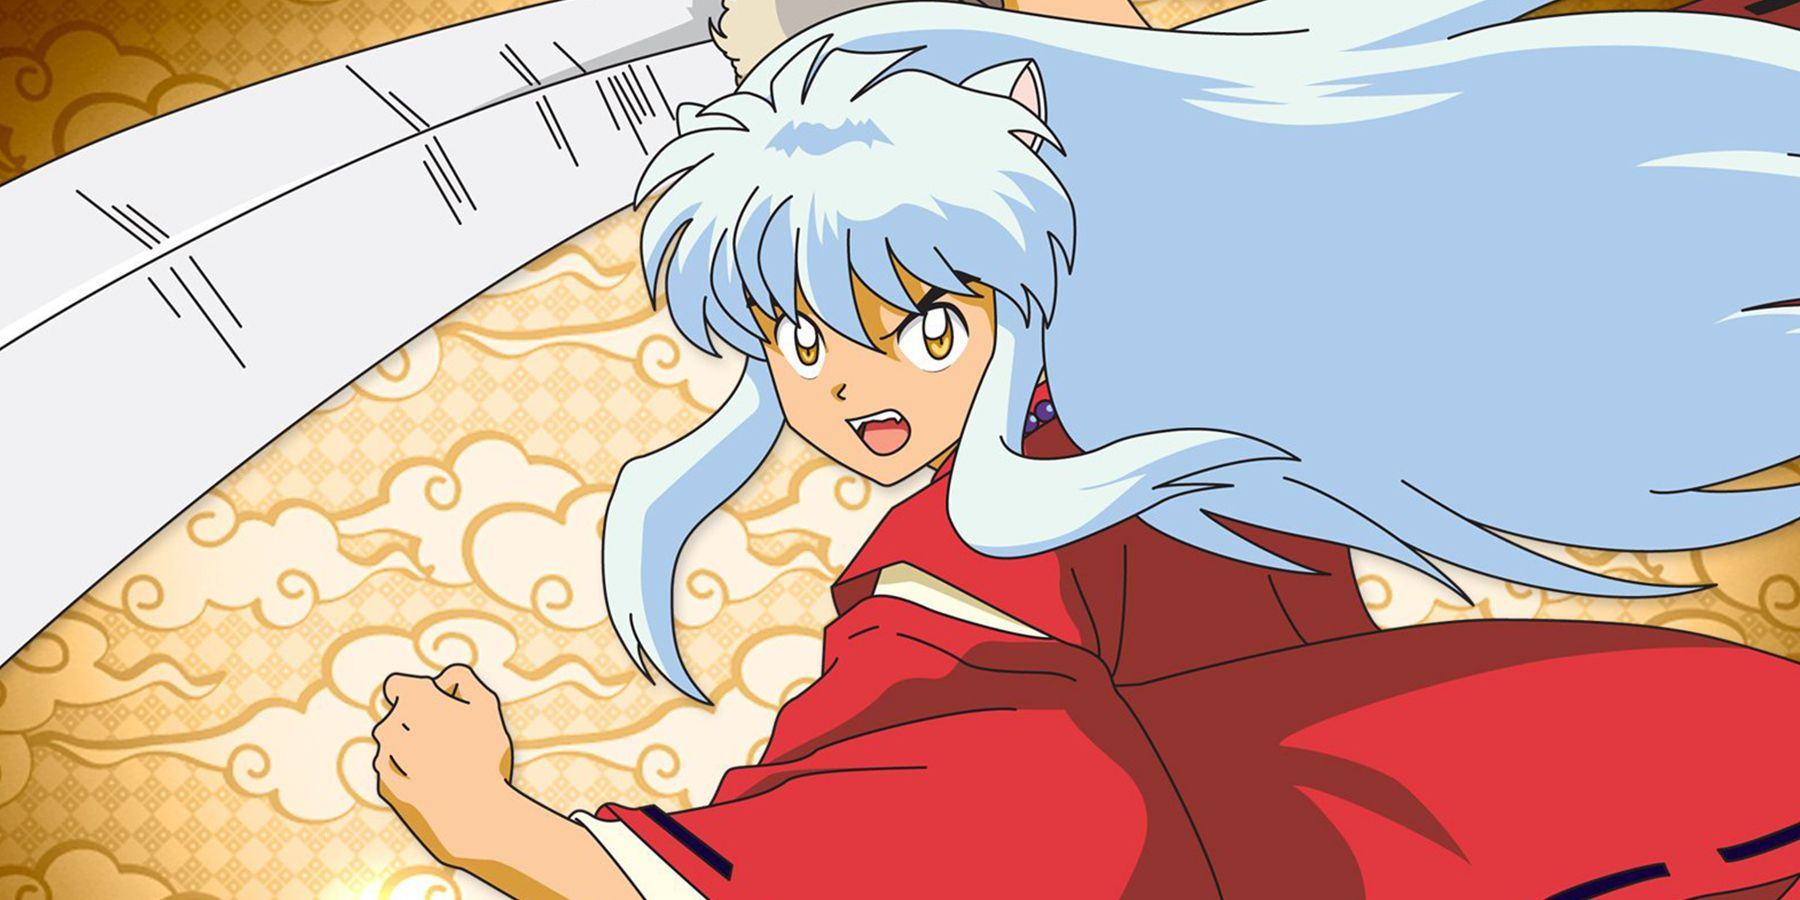 Inuyasha: A Decade Later, the Anime Remains One of the Greats